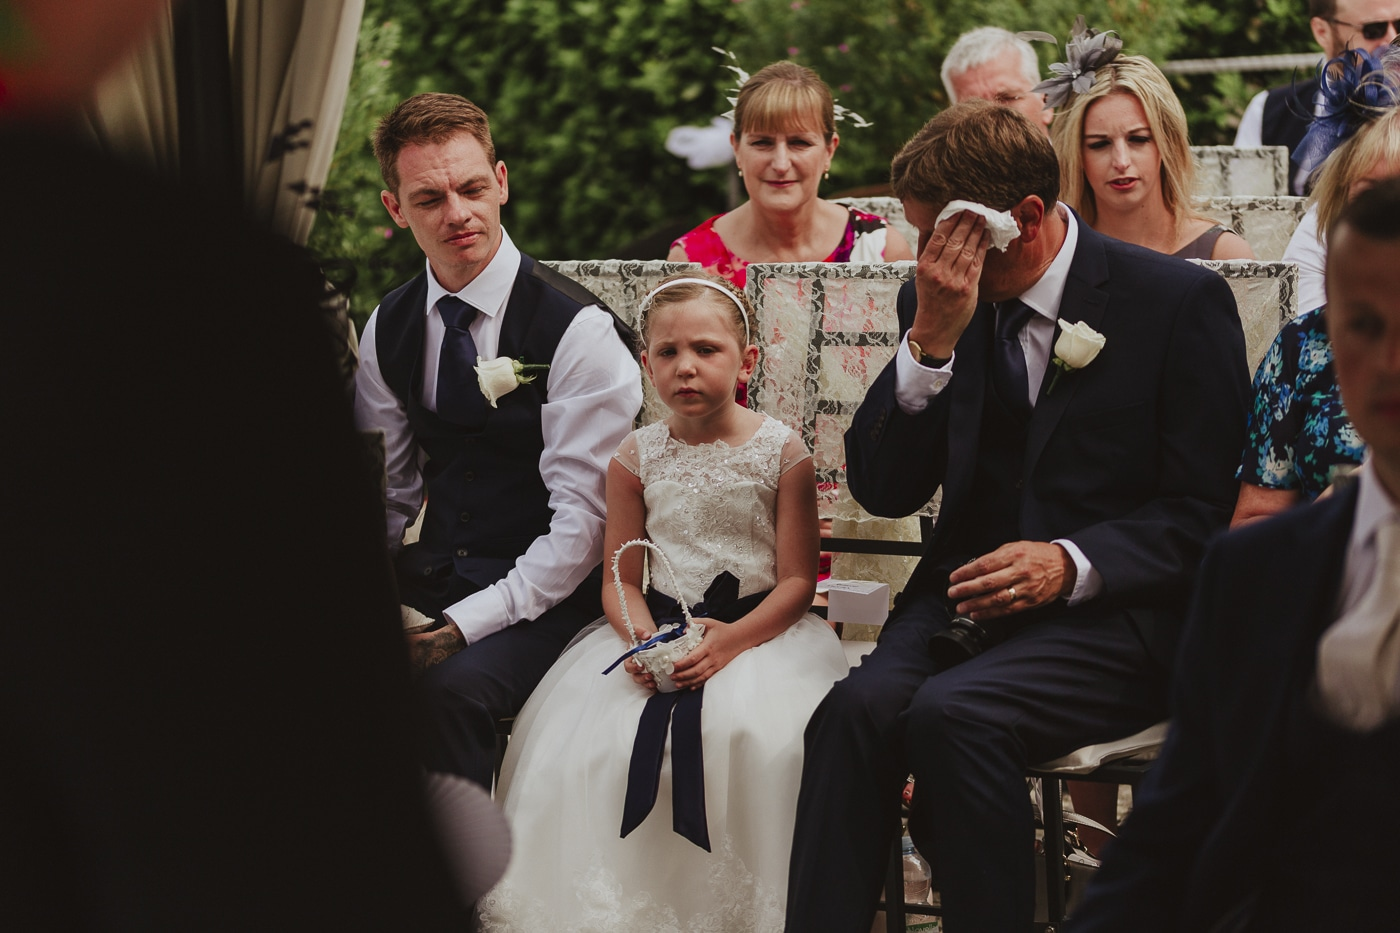 Men and small flowergirl sit patiently during wedding vows